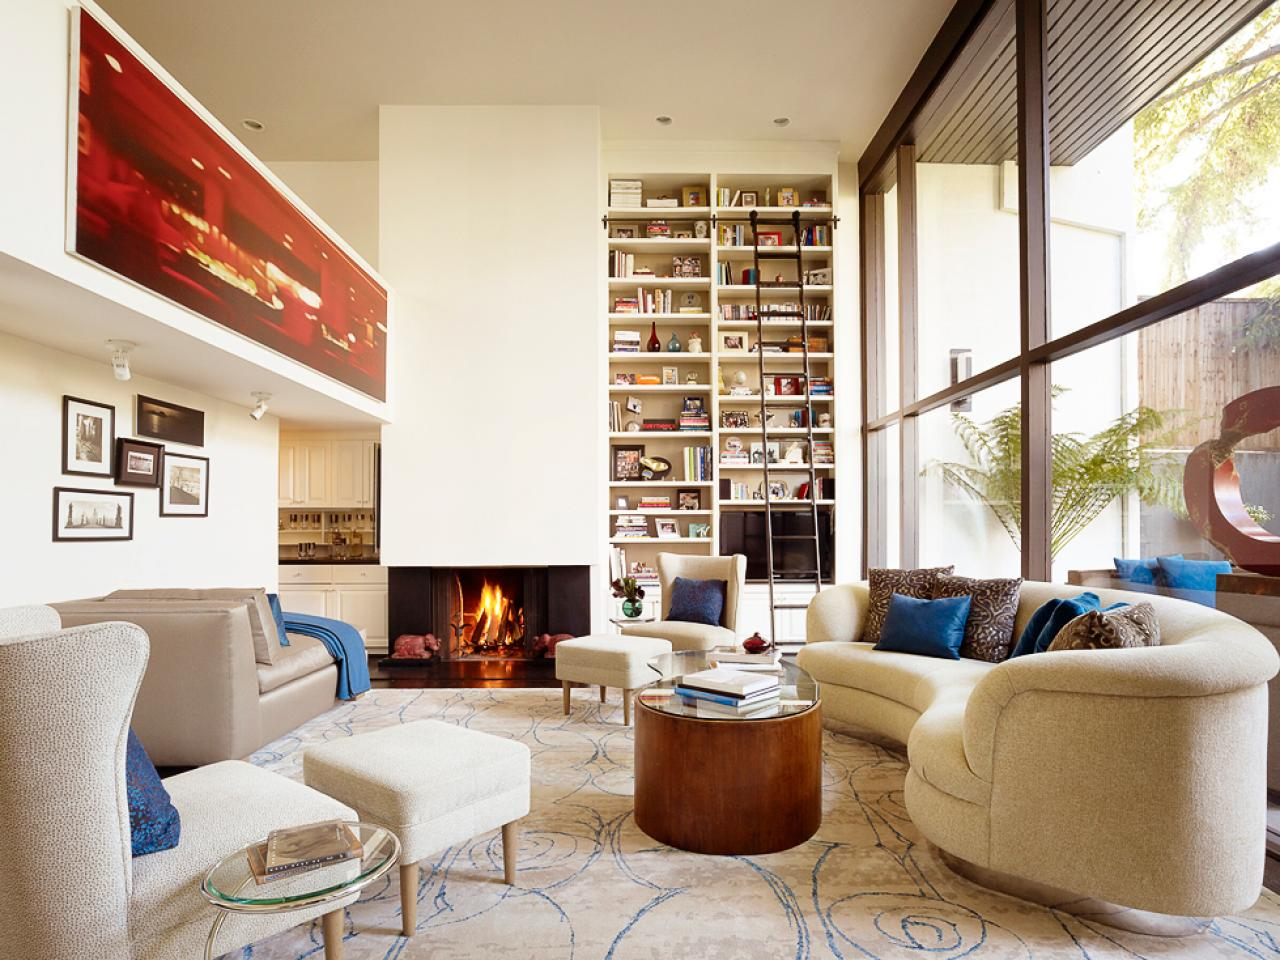 The Wonderful Living Room Layout with Curve Sofa and High Wall Bookshelves near Modern Fireplace